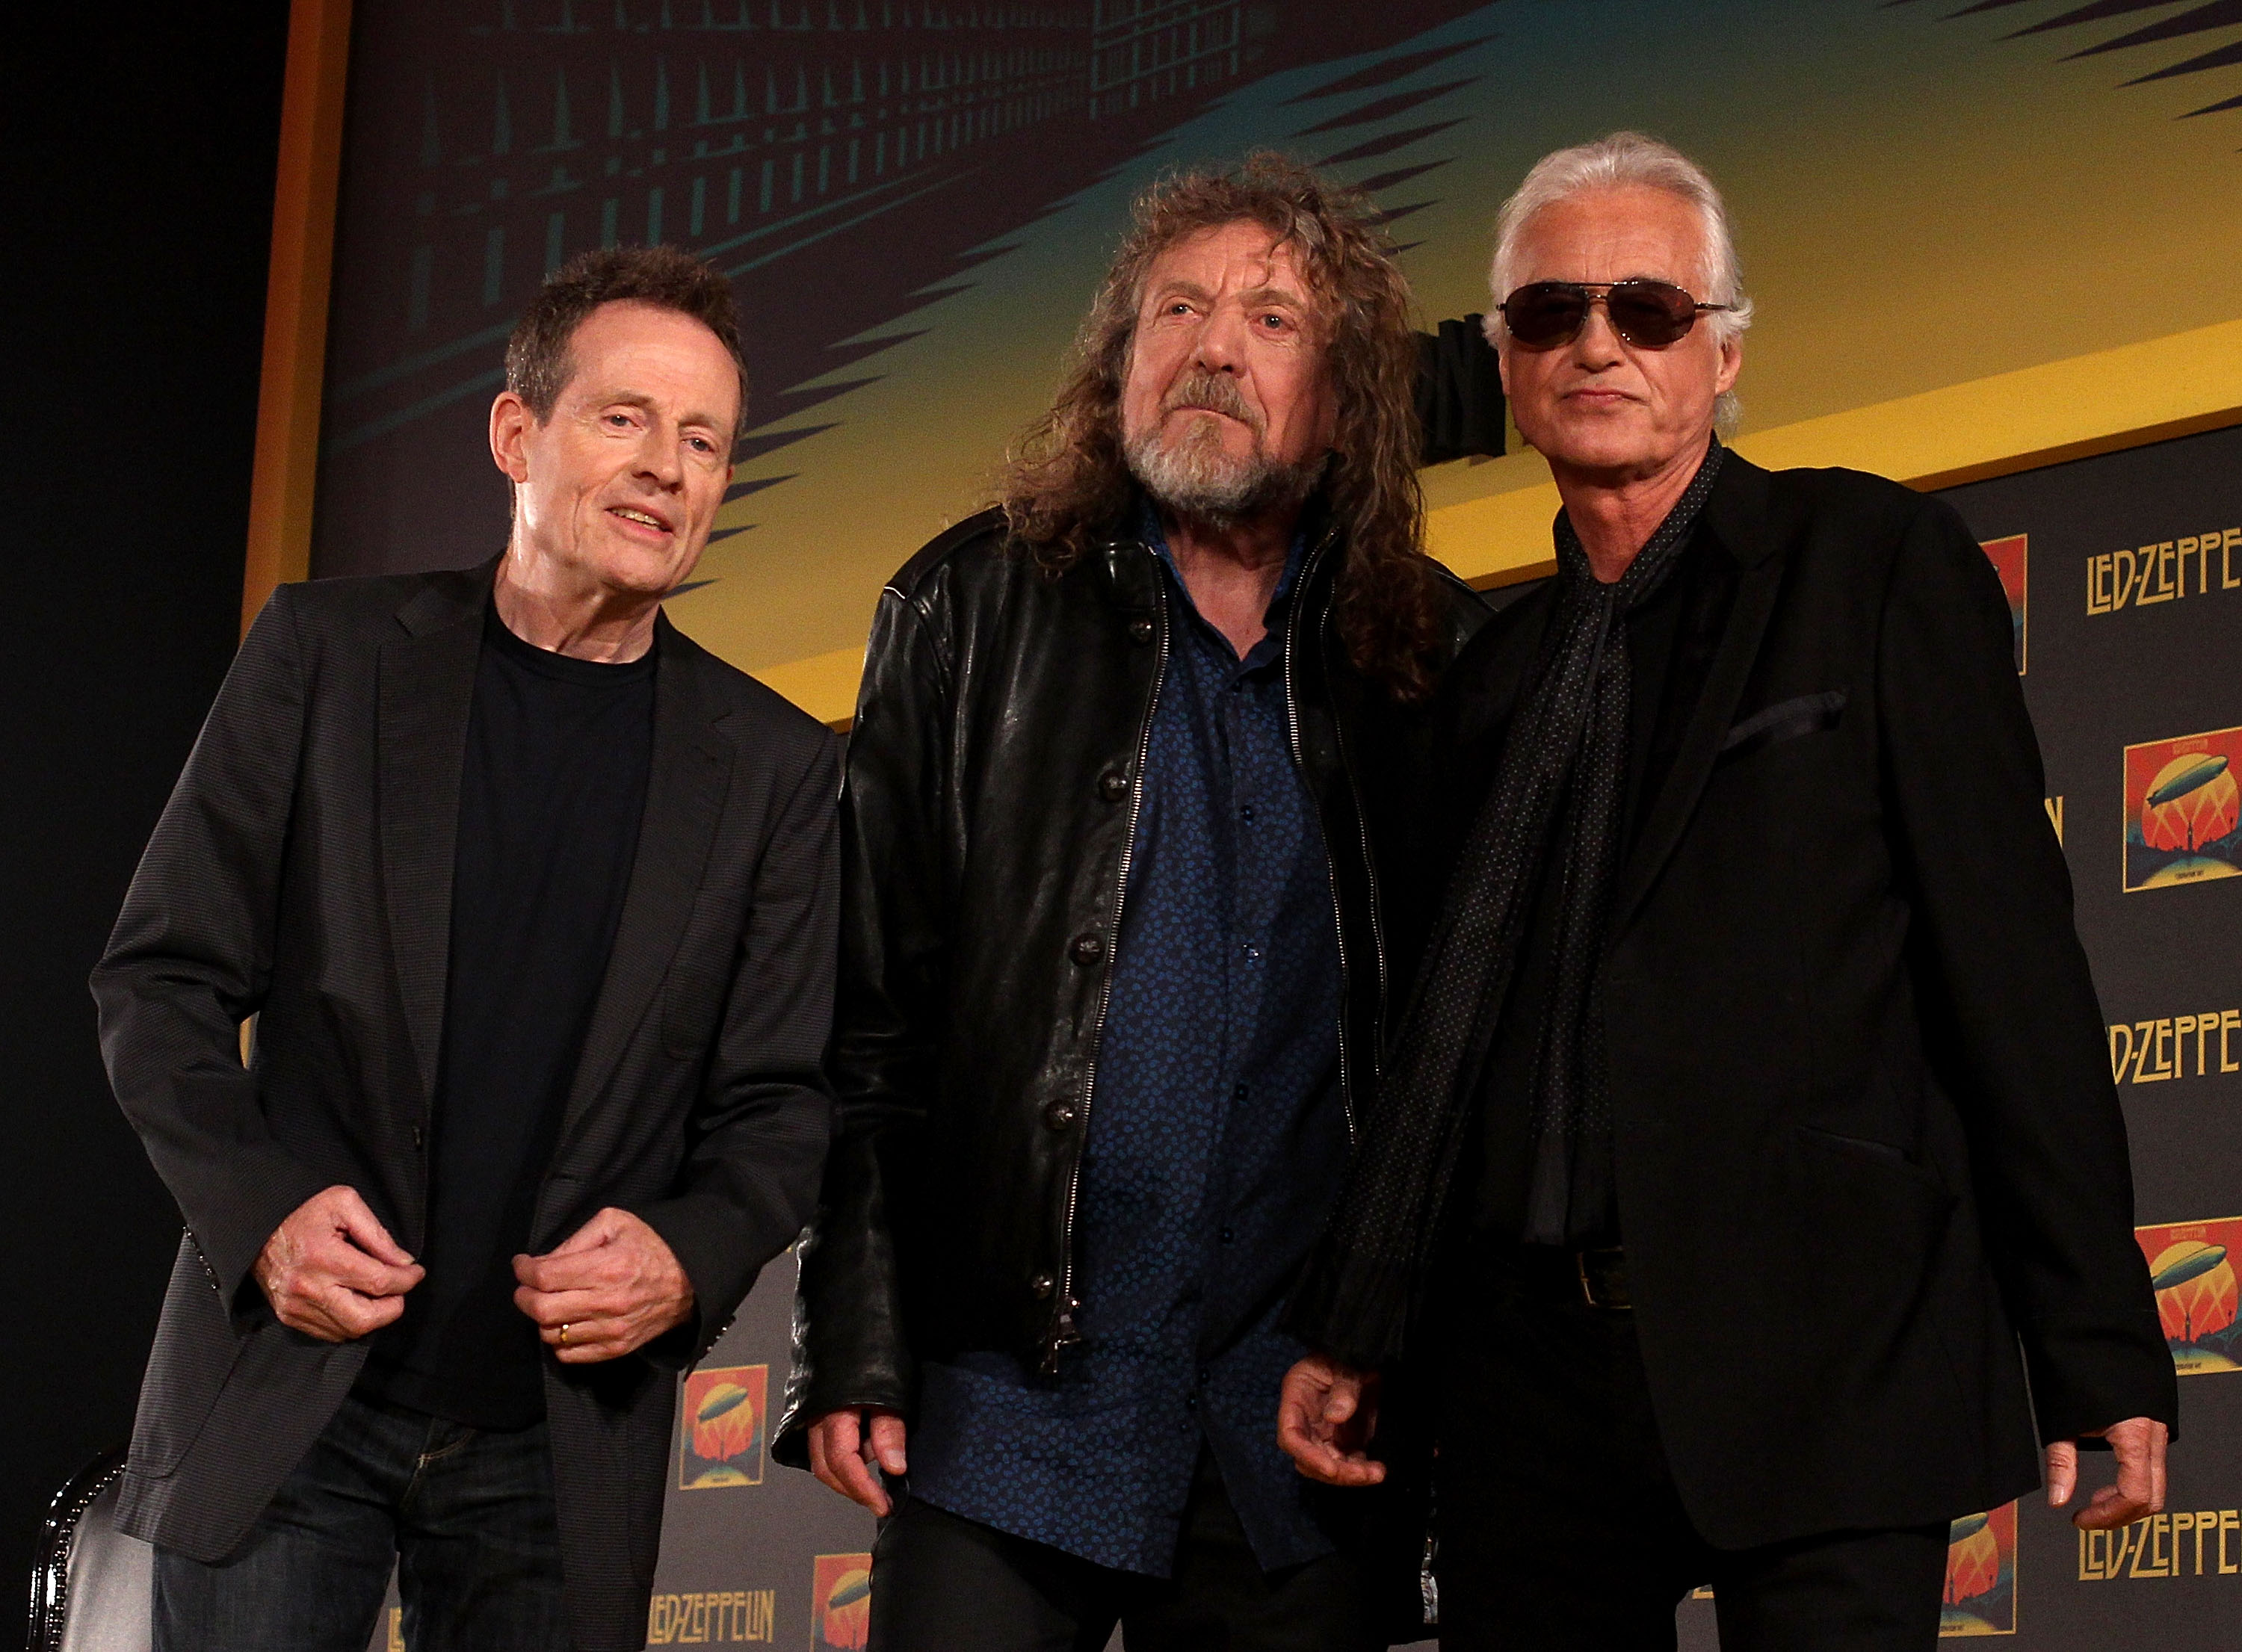 Is a Led Zeppelin reunion happening? Sources claim 'no deal in place' to headline Desert Trip 2017